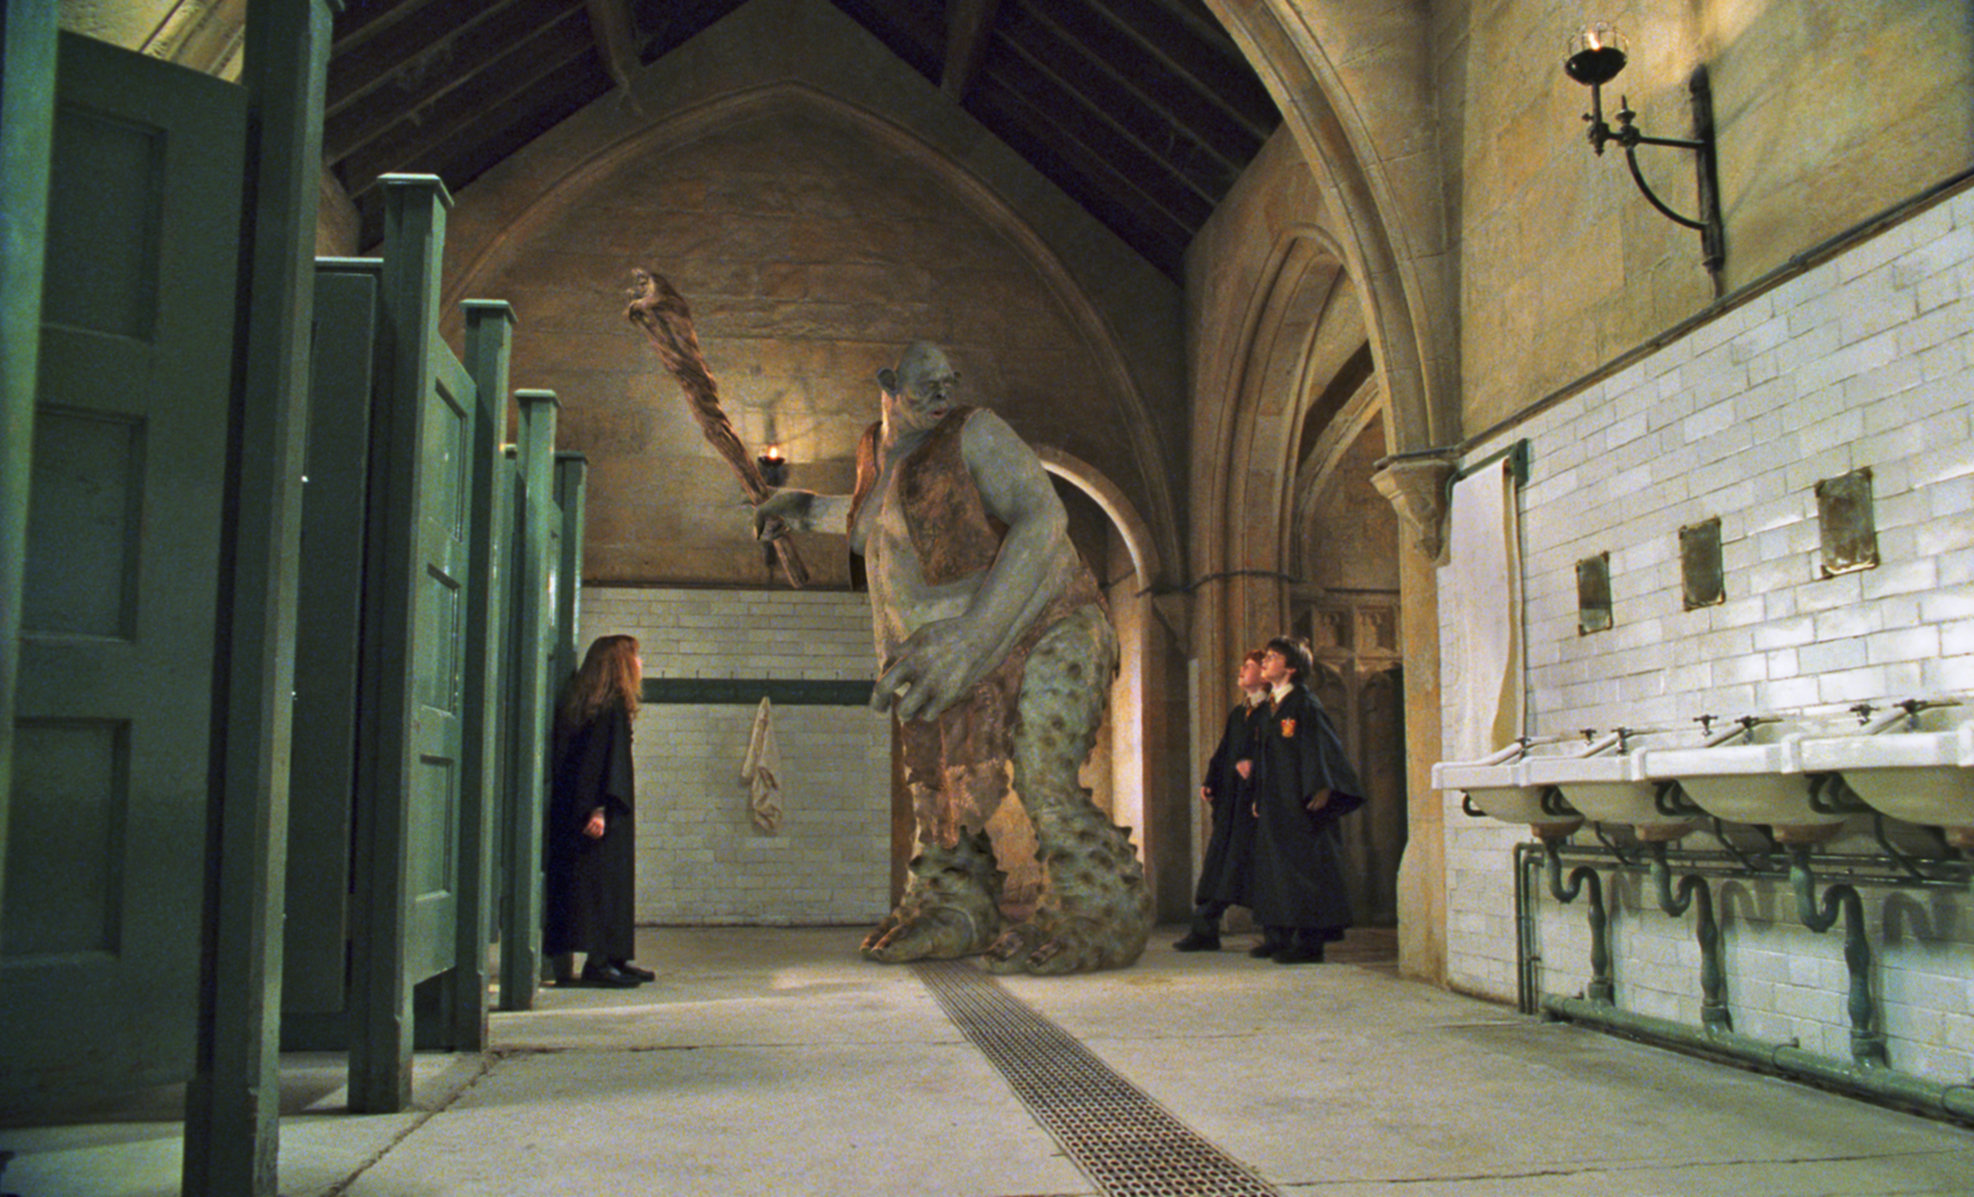 Harry, Ron, and Hermionie must confront their first major challenge, a troll in Harry Potter and The Philosopher's Stone